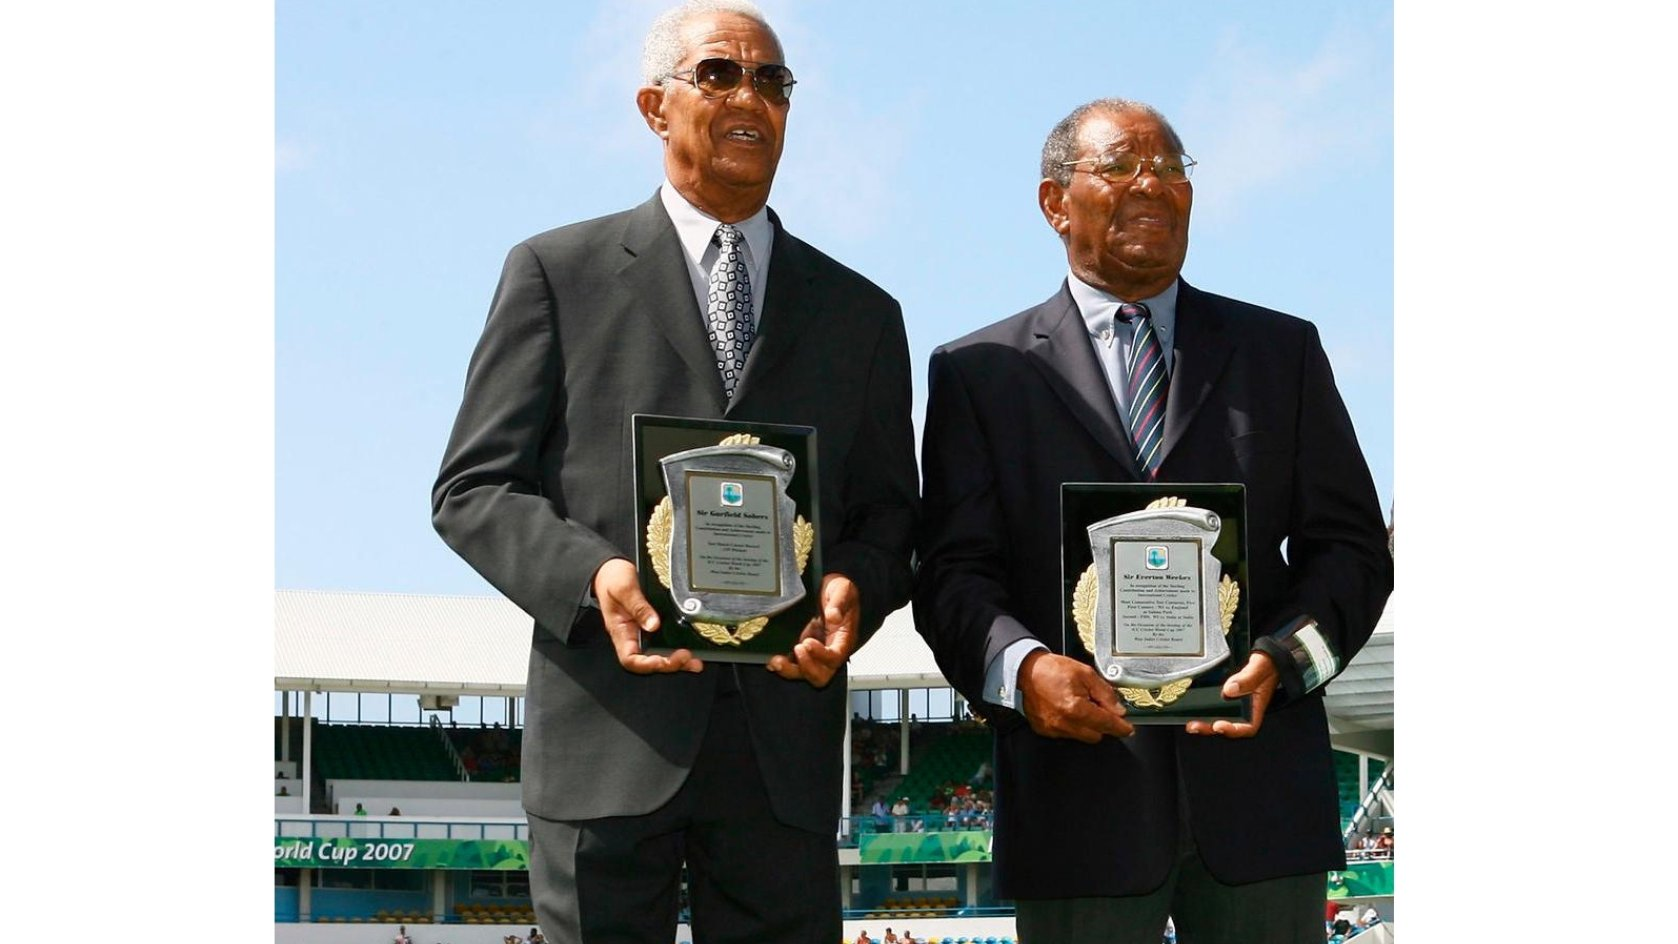 Weeks, right, and Sobers